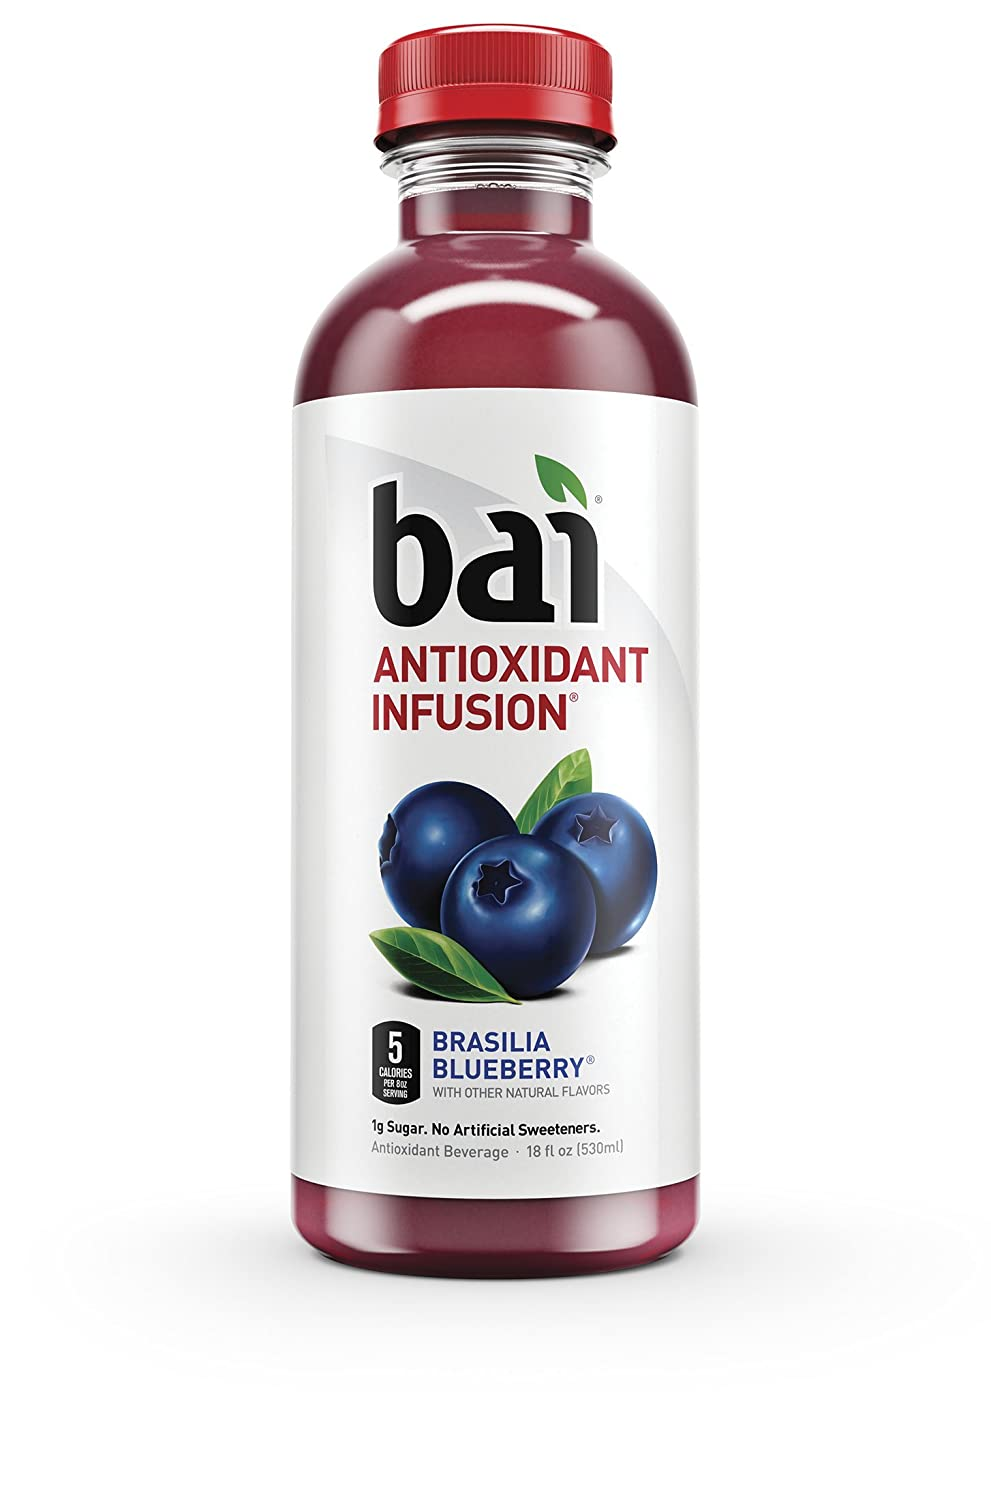 """""""Bai Brasilia Blueberry, 5 Calories, No Artificial Sweeteners, 1g Sugar, Antioxidant Infused Beverage (Pack of 12)"""""""